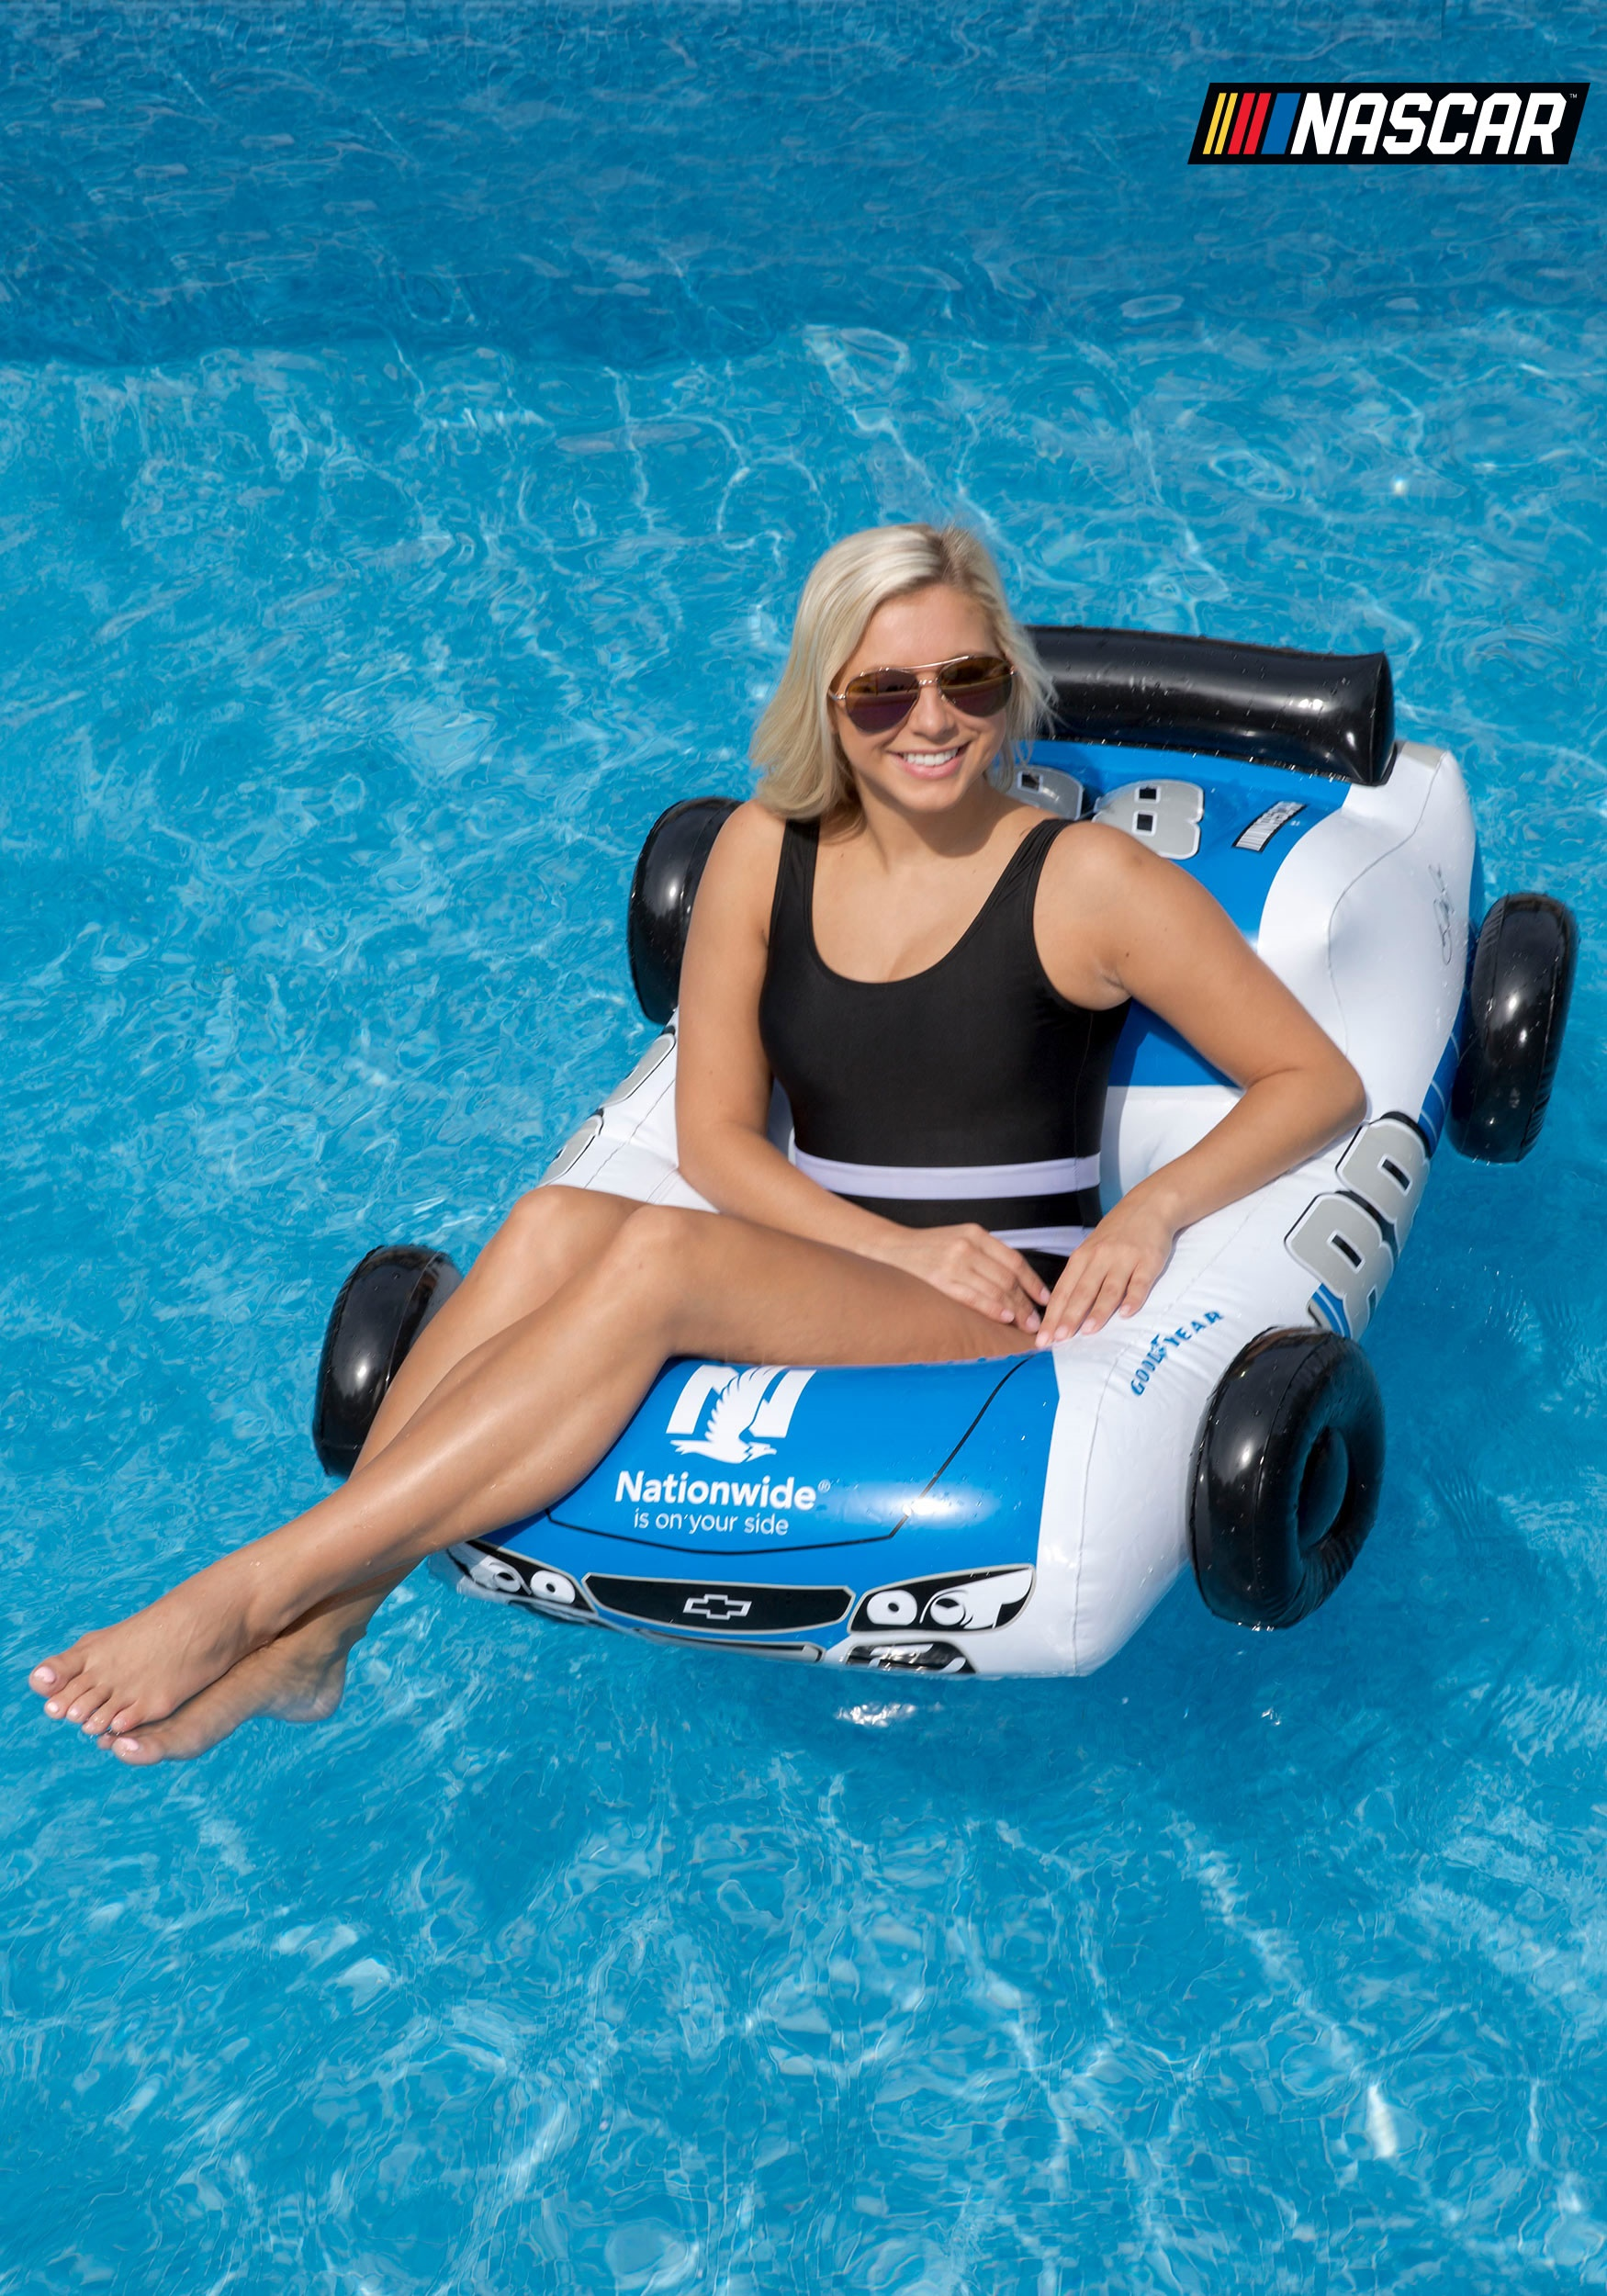 NASCAR Dale Earnhardt Jr. Car Small Pool Float & Race Car Pool Inflatable NASCAR Dale Earnhardt Jr.